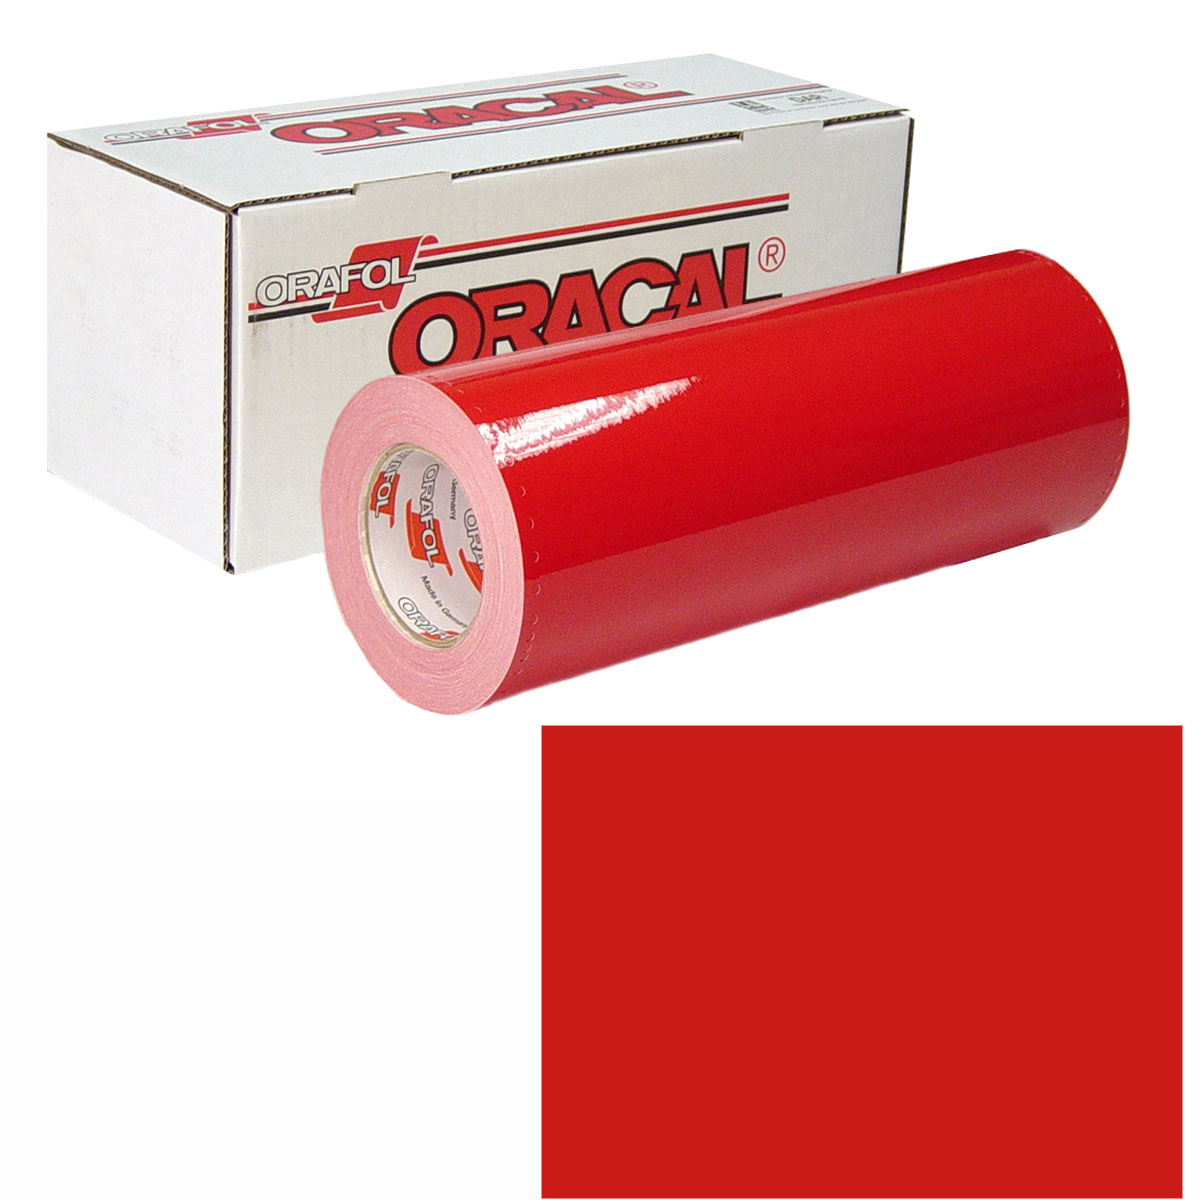 ORACAL 951 15In X 10Yd 324 Blood Red